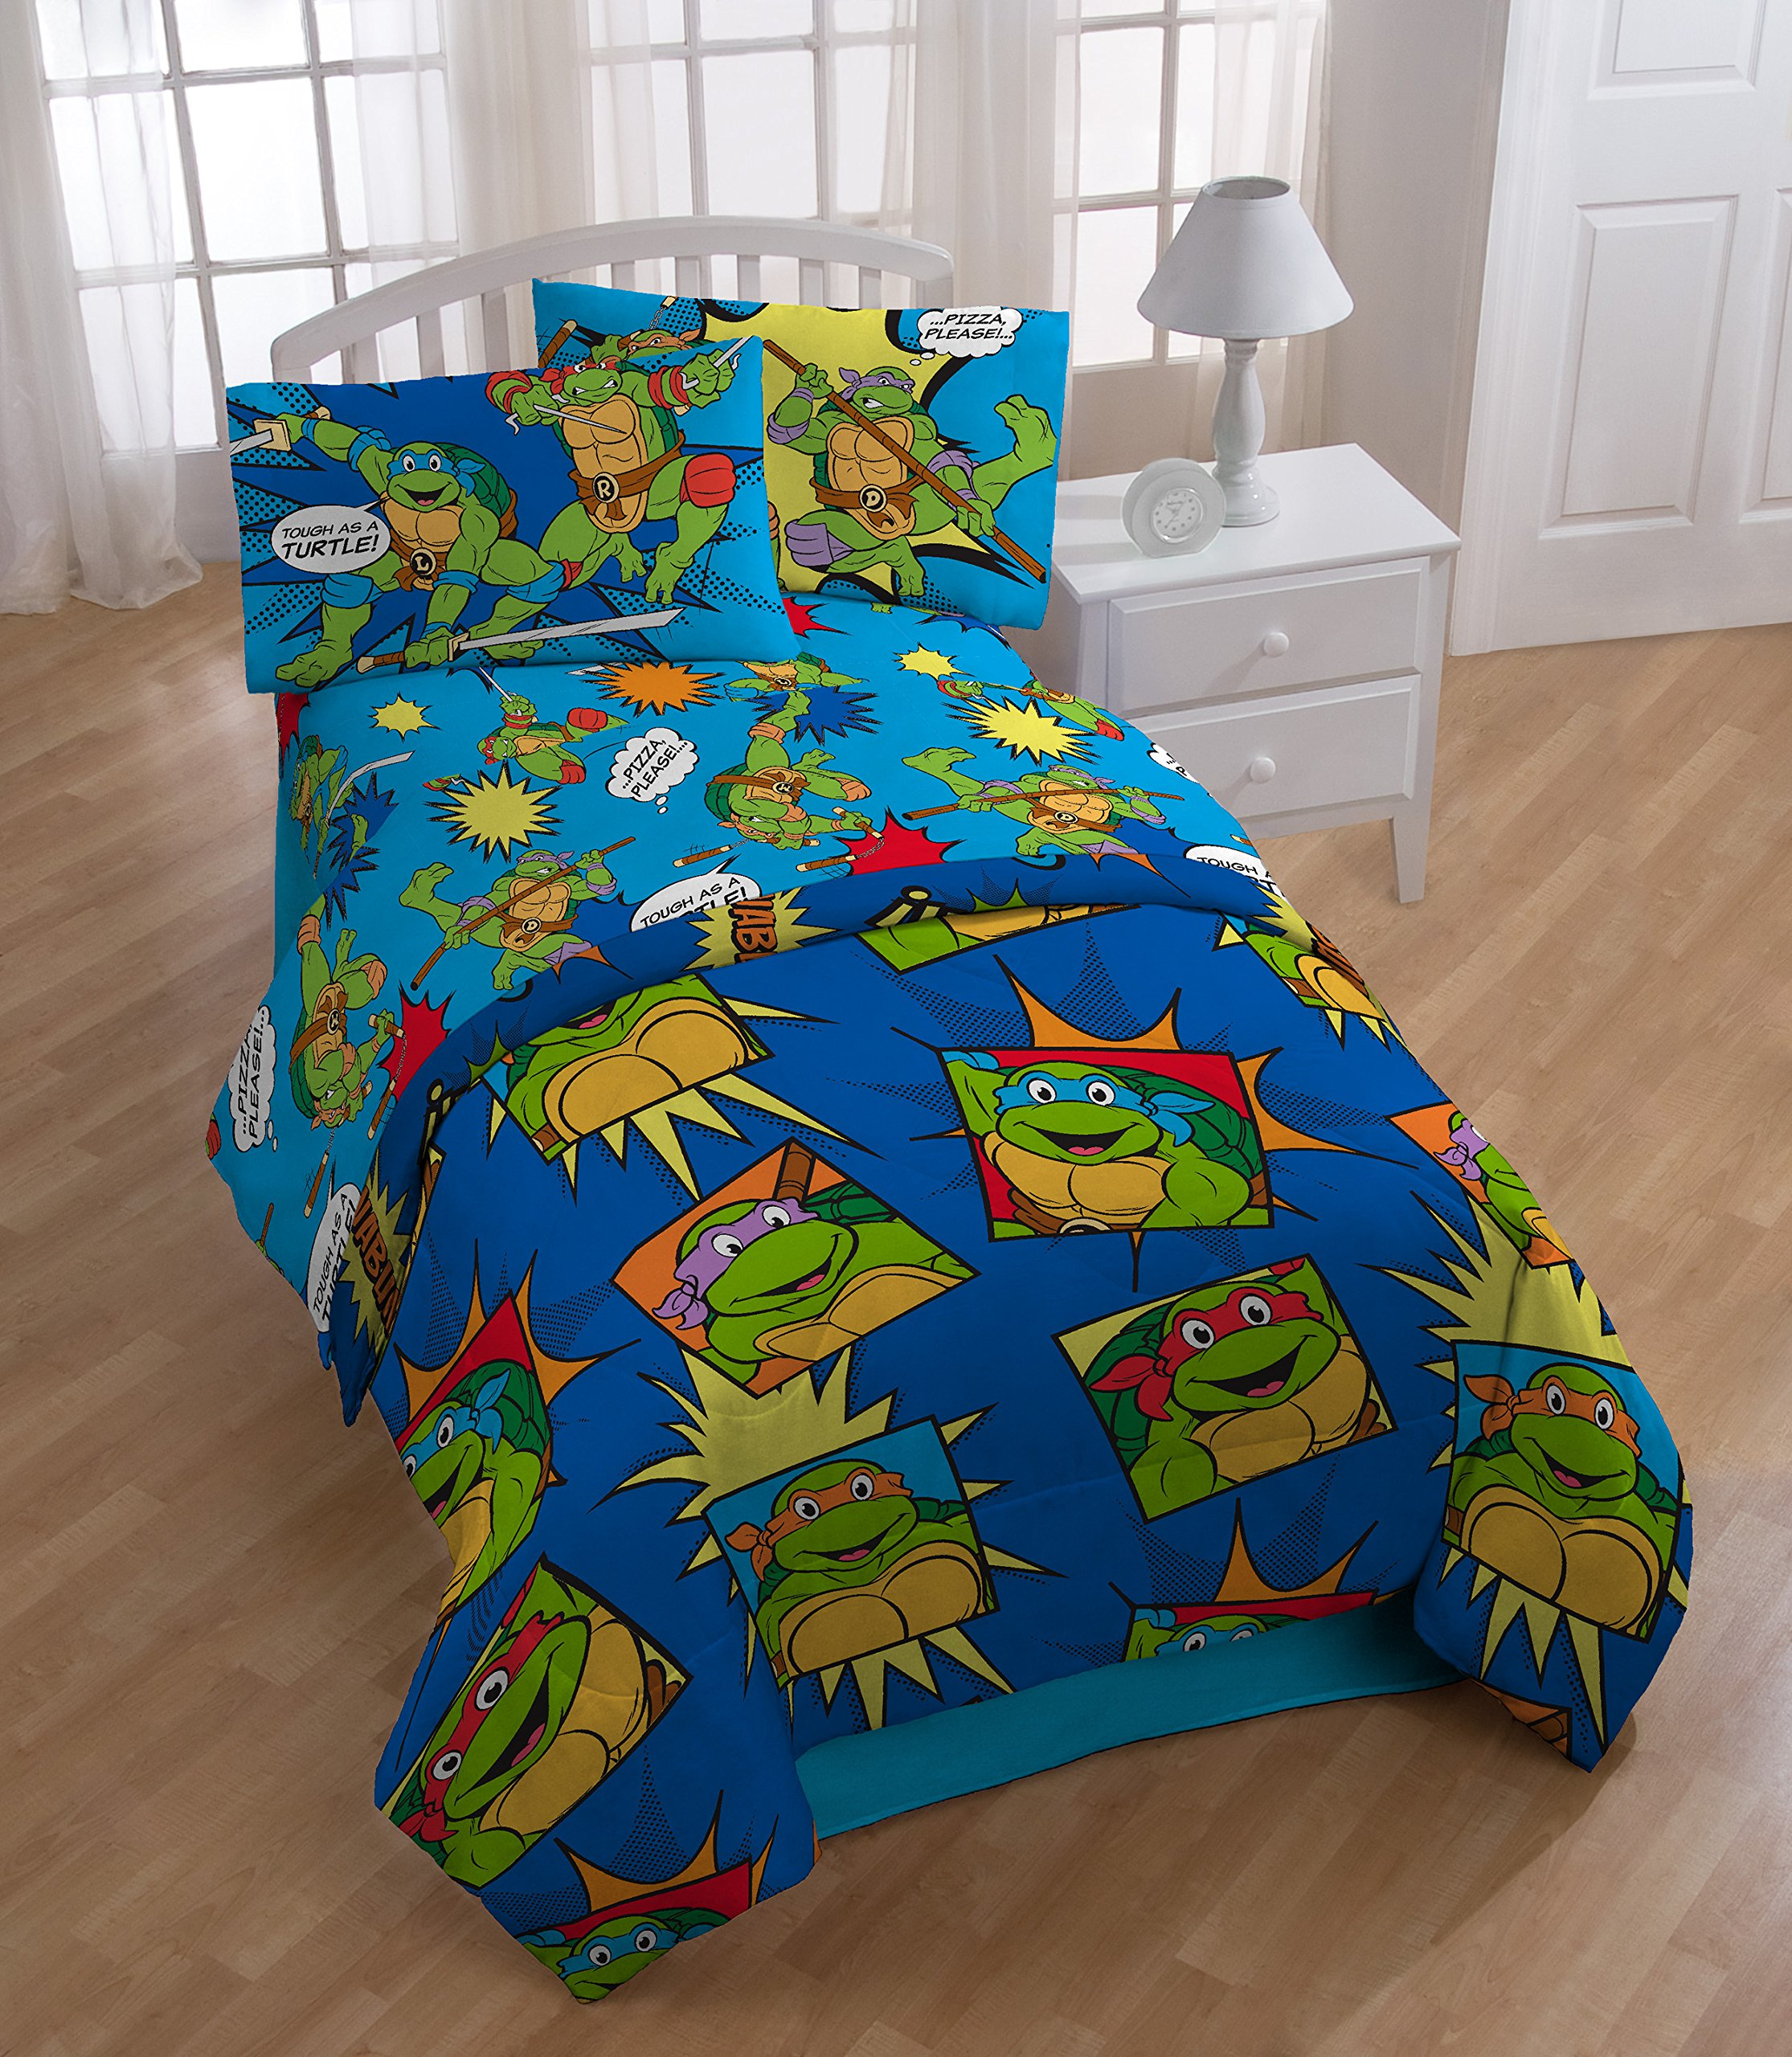 NIckelodeon Teenage Mutant Ninja Turtles Team Turtles Twin Comforter - Super Soft Kids Reversible Bedding features the Turtles - Fade Resistant Polyester Microfiber Fill (Official NIckelodeon Product) by Jay Franco (Image #2)